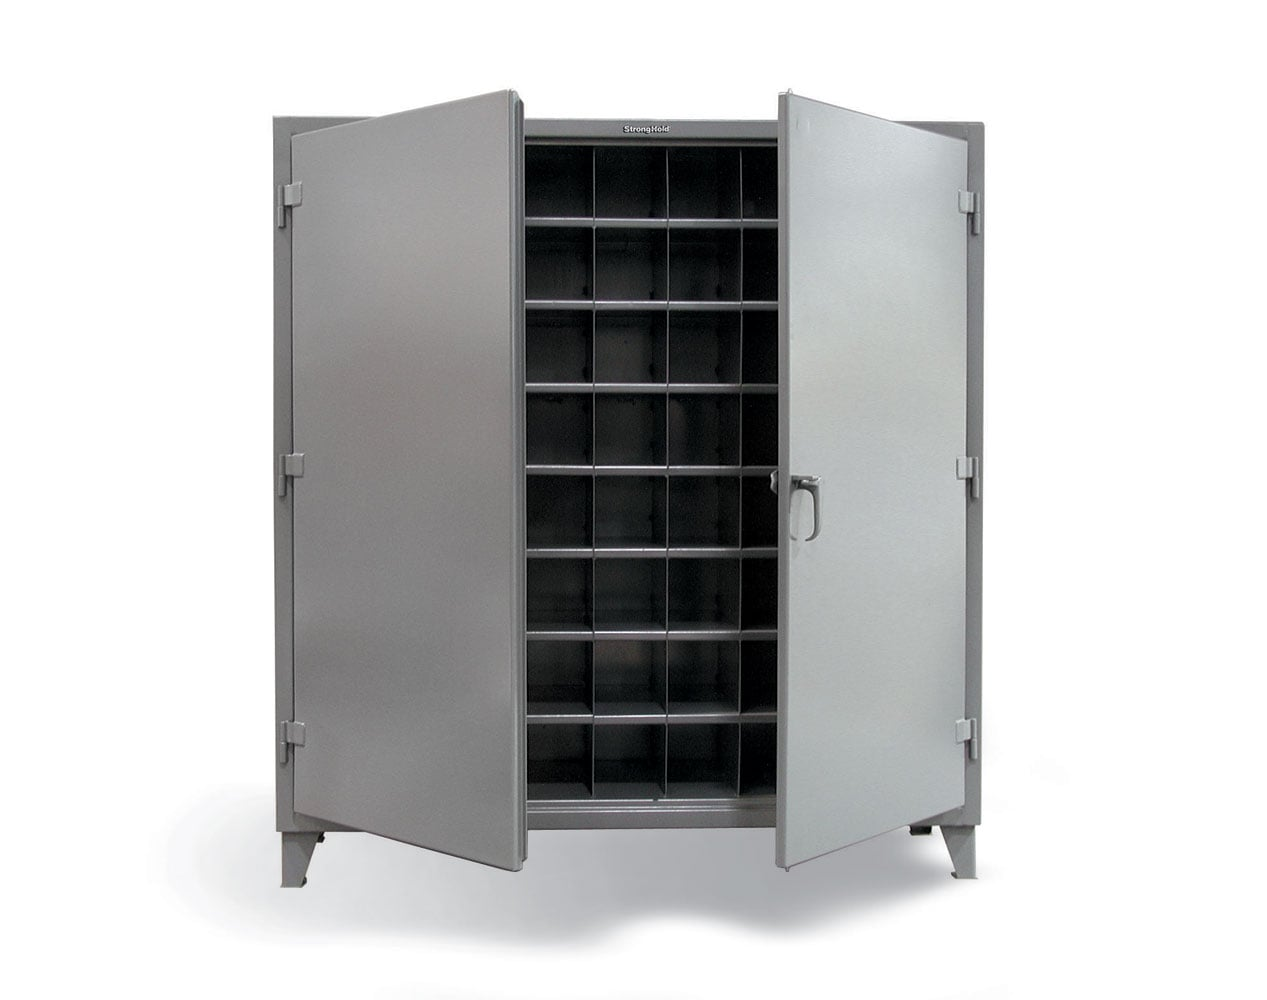 Extra Heavy Duty 12 GA Cabinet with 72 Pigeonhole Shelving – 72 in. W x 24 in. D x 78 in. H